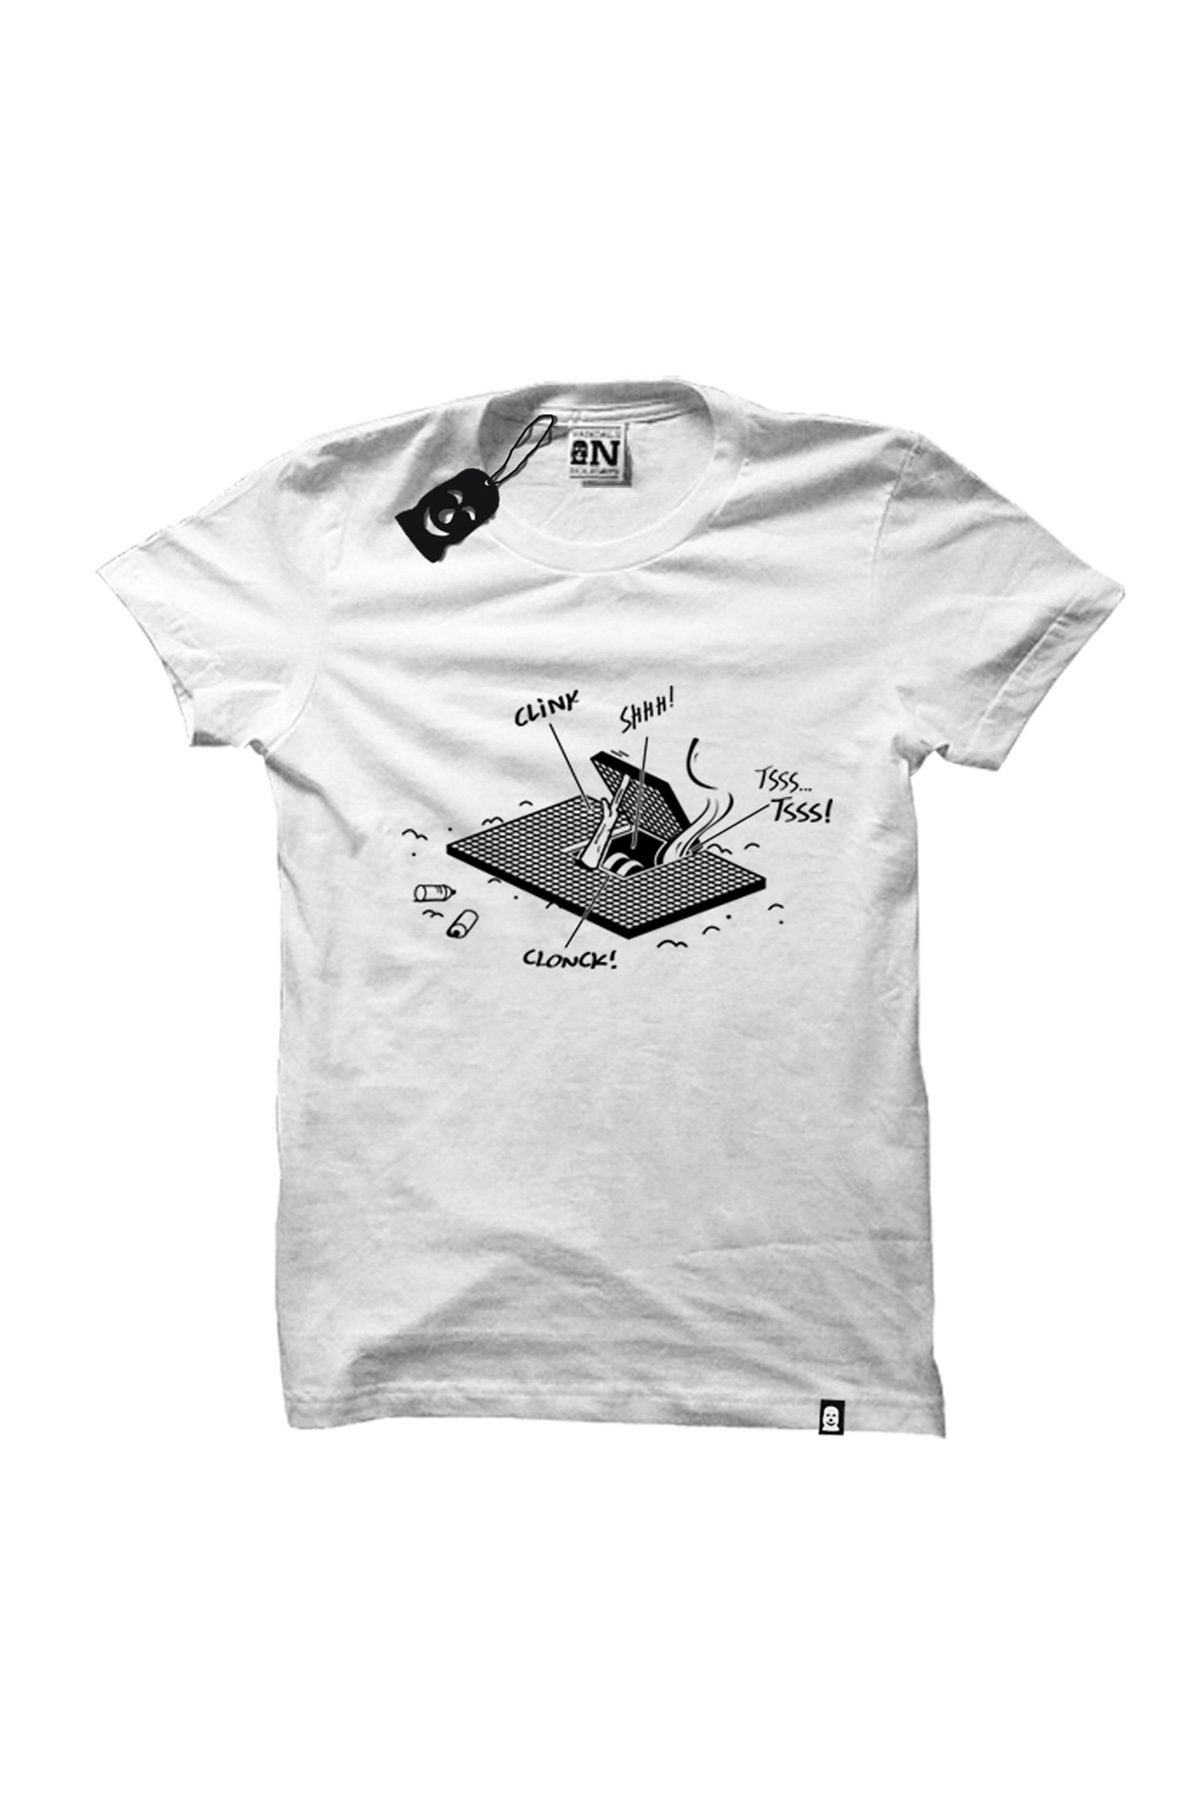 Vandals On Holidays HATCH STORIES T-Shirt